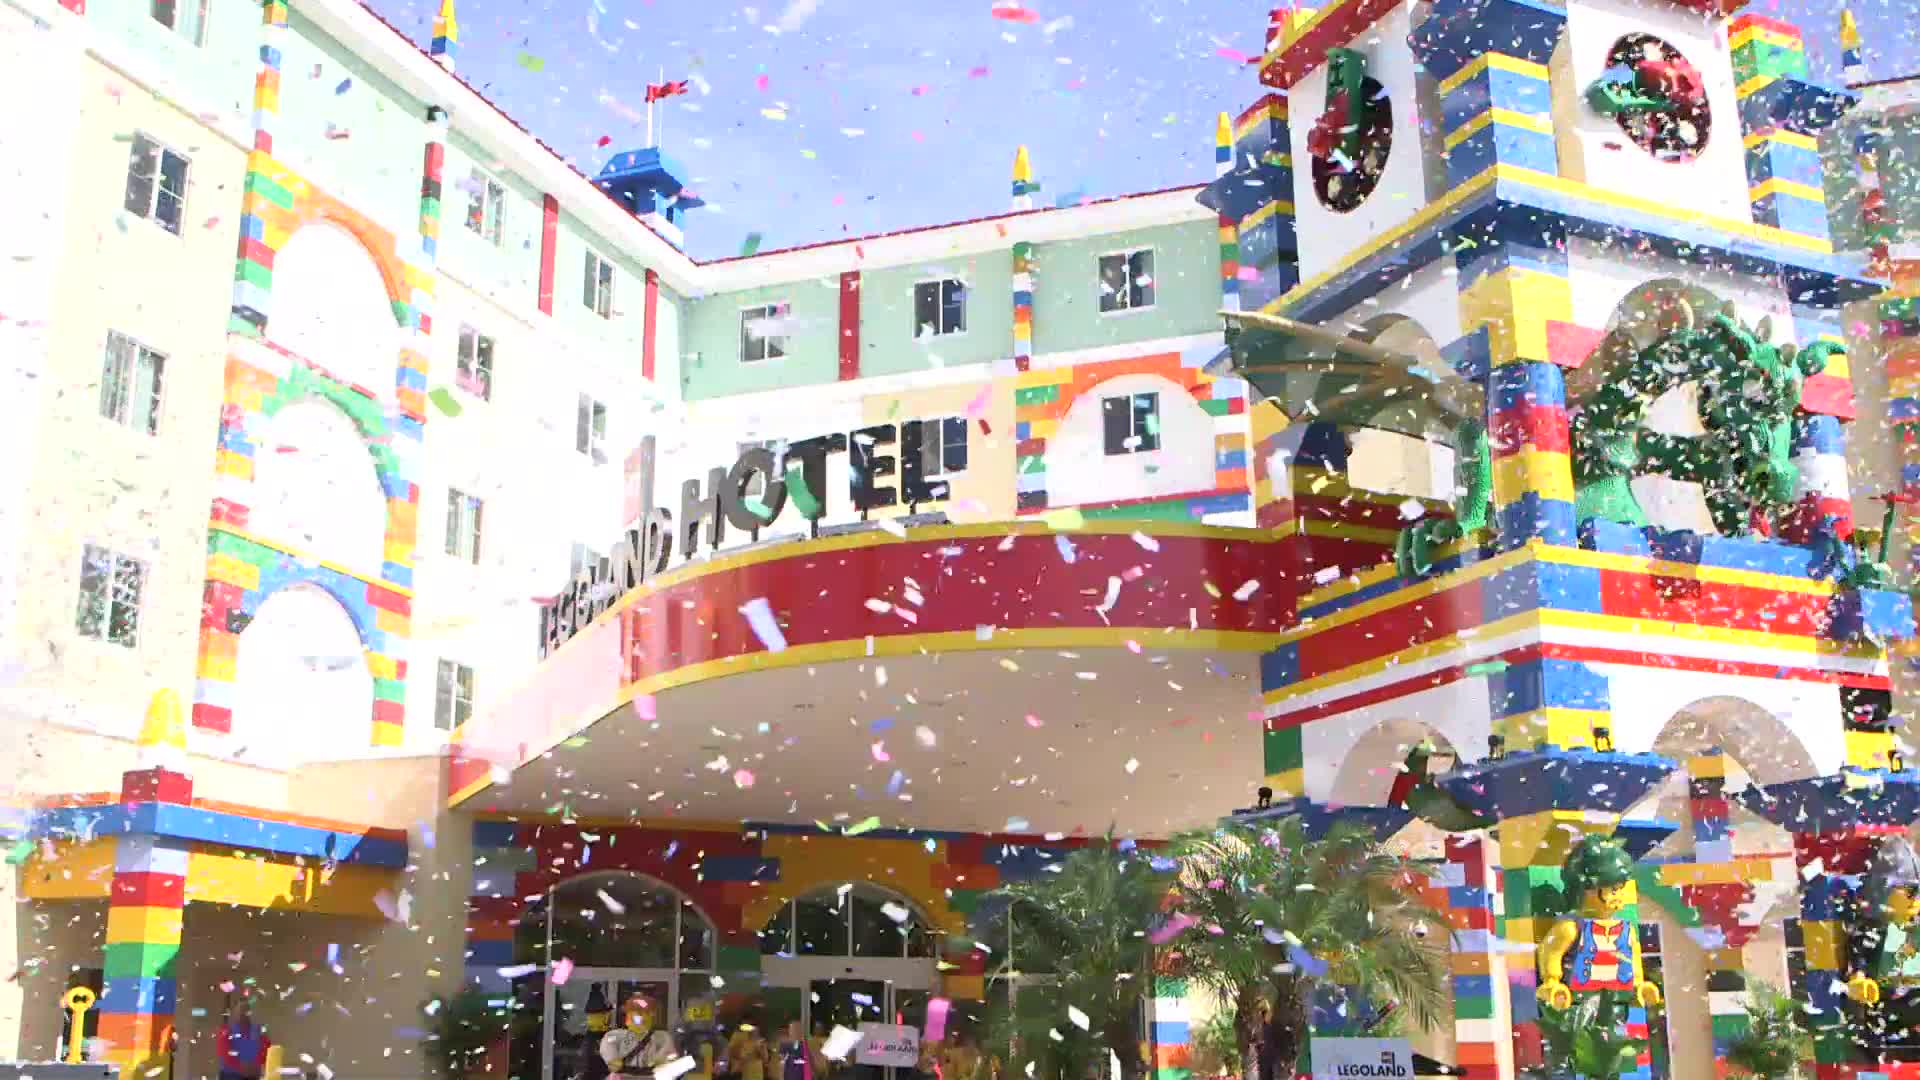 LEGOLAND® Hotel at LEGOLAND® Florida Resort opened today, marking the expansion of the resort to become an immersive, multi-day experience for families. The grand opening was honored with thousands of colorful LEGO® minifigures blasting out of cannons atop the hotel and a child discovering a key to open the hotel built for kids.